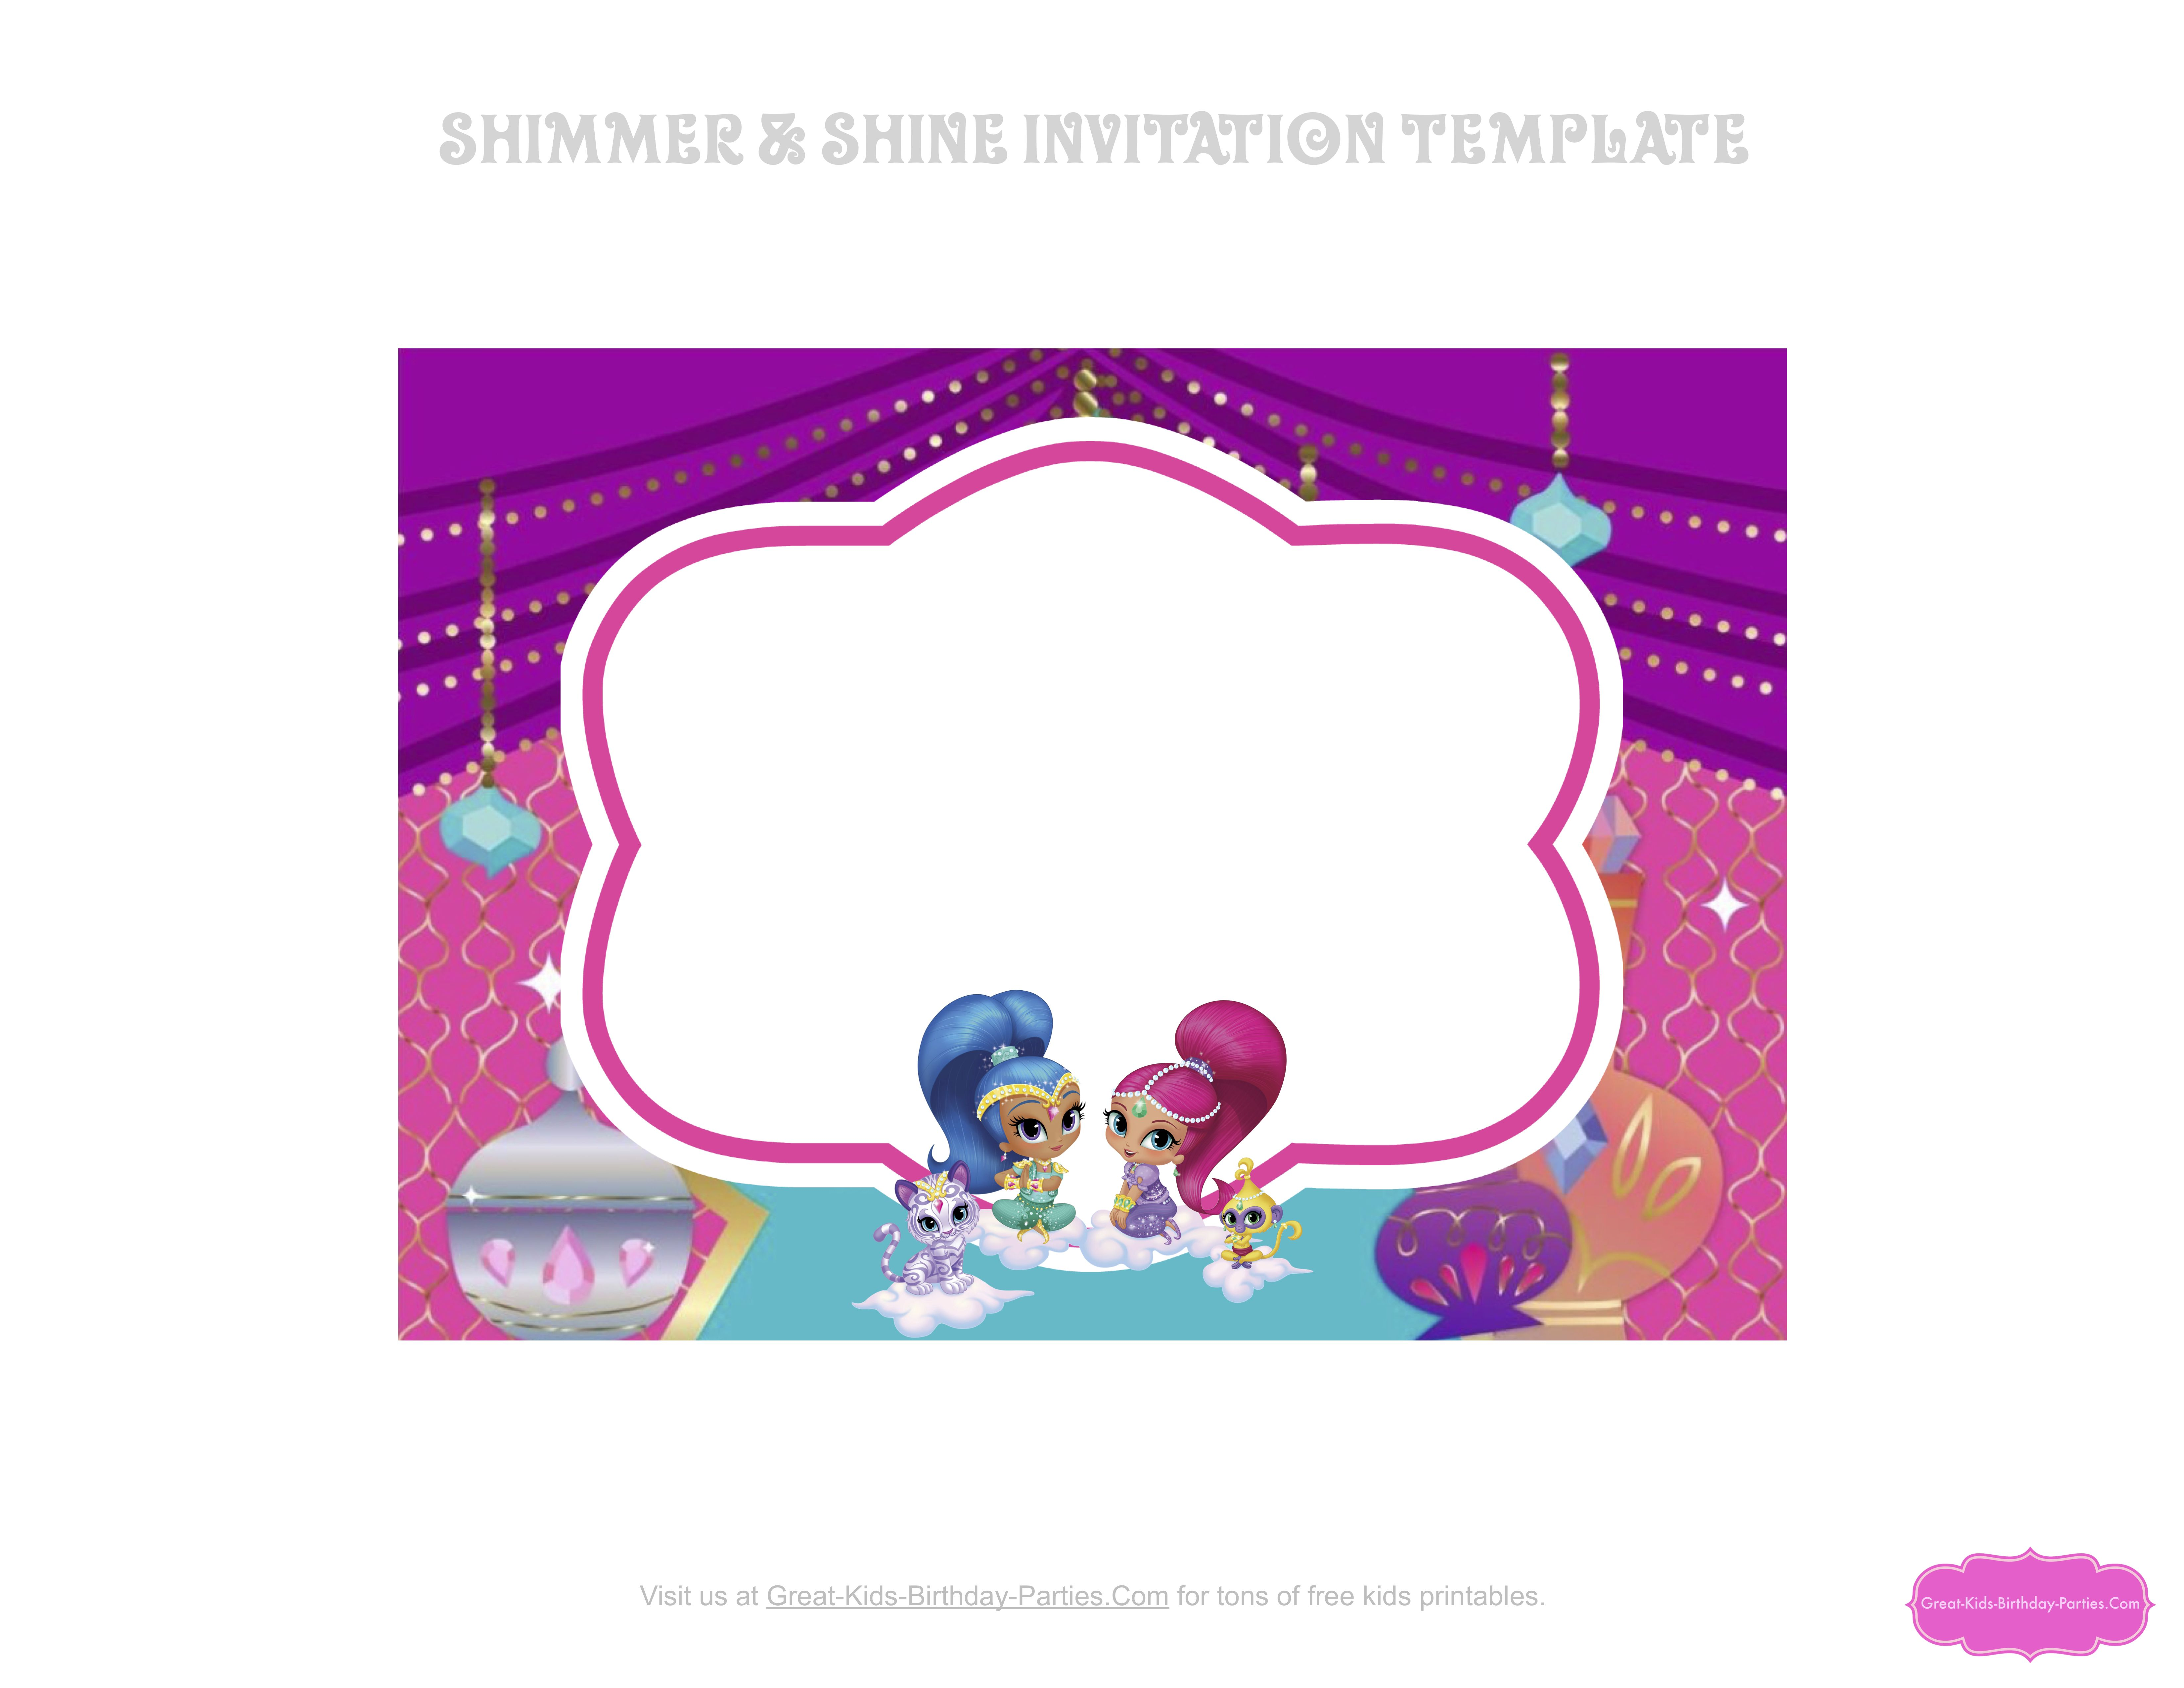 Shimmer And Shine Invitation Template2 Jpg 6600 5100 Shimmer N Shine Shimmer And Shine Characters Shimmer